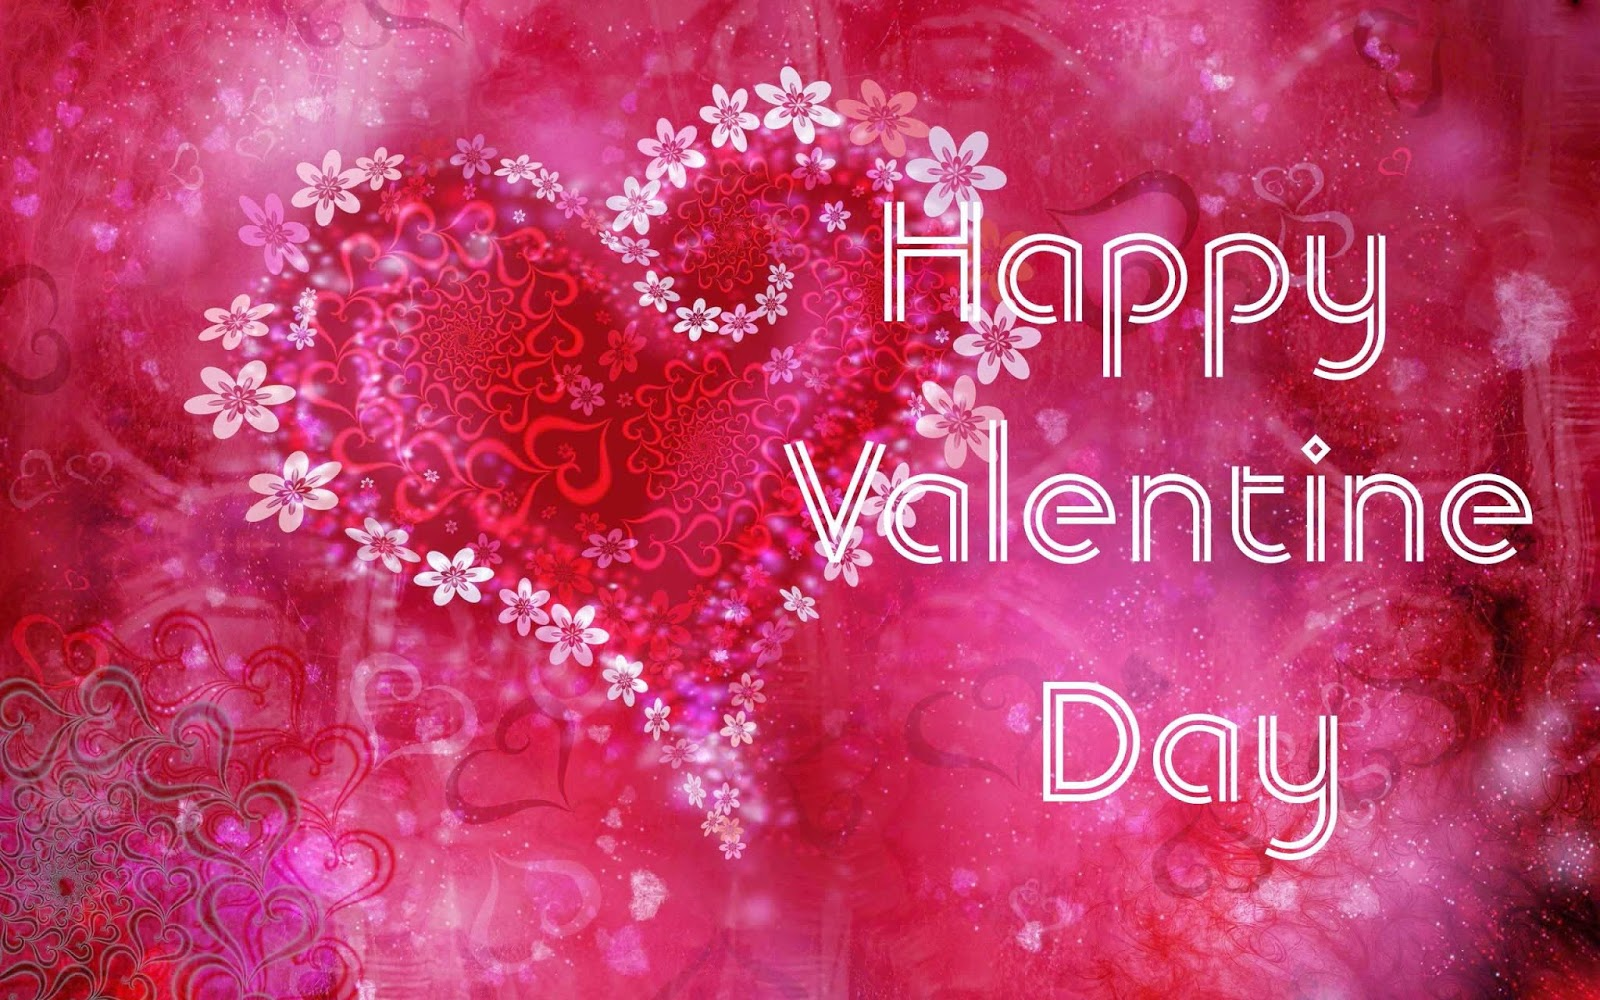 Valentines Day Images 2020 Quotes And Hd Wallpapers